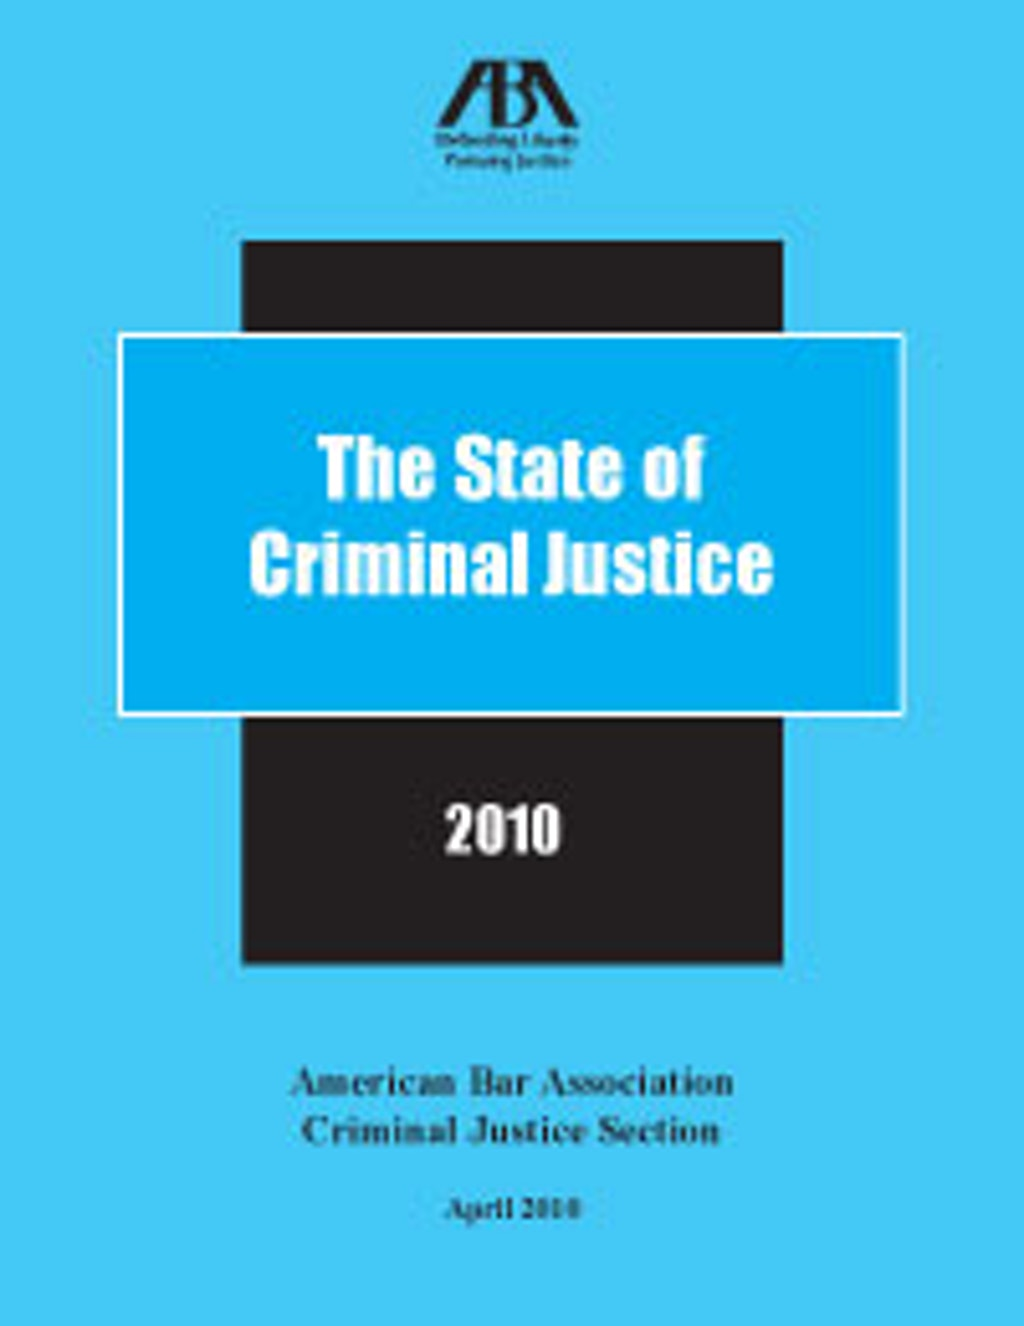 NEW RESOURCES: The State of Criminal Justice 2010